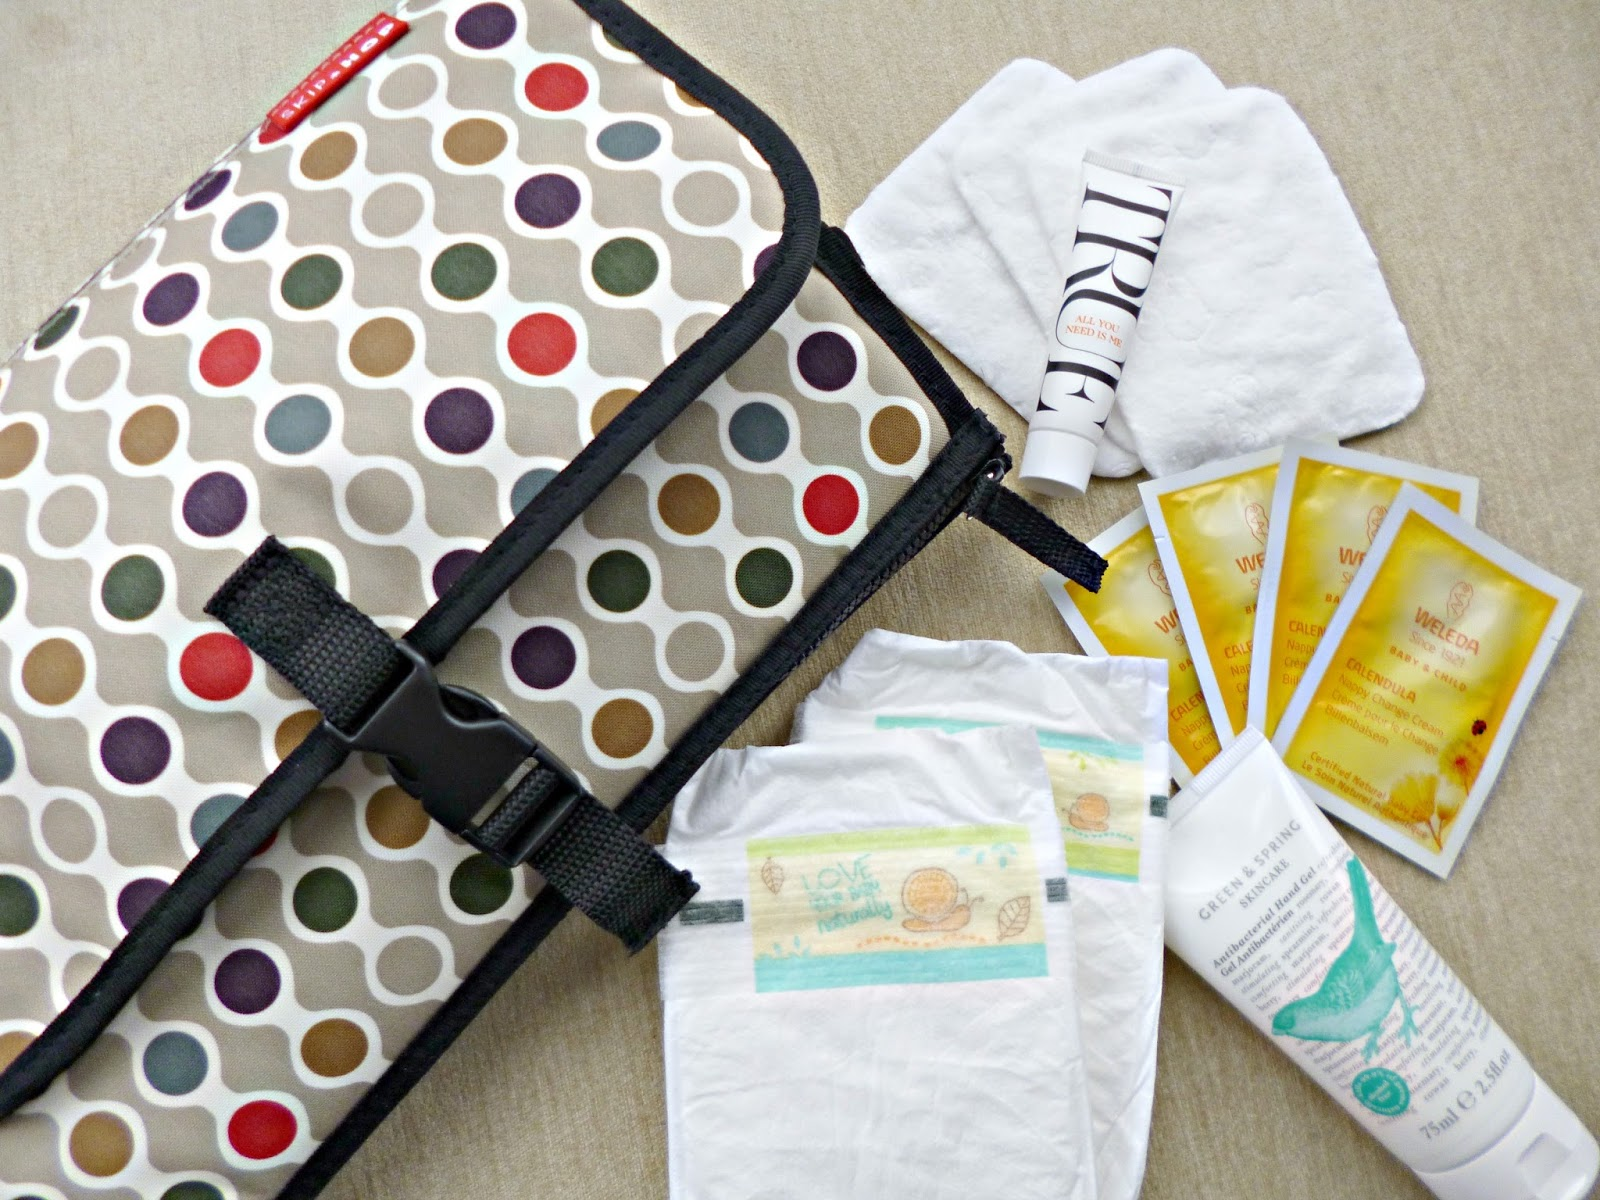 Greener baby: Change bag essentials